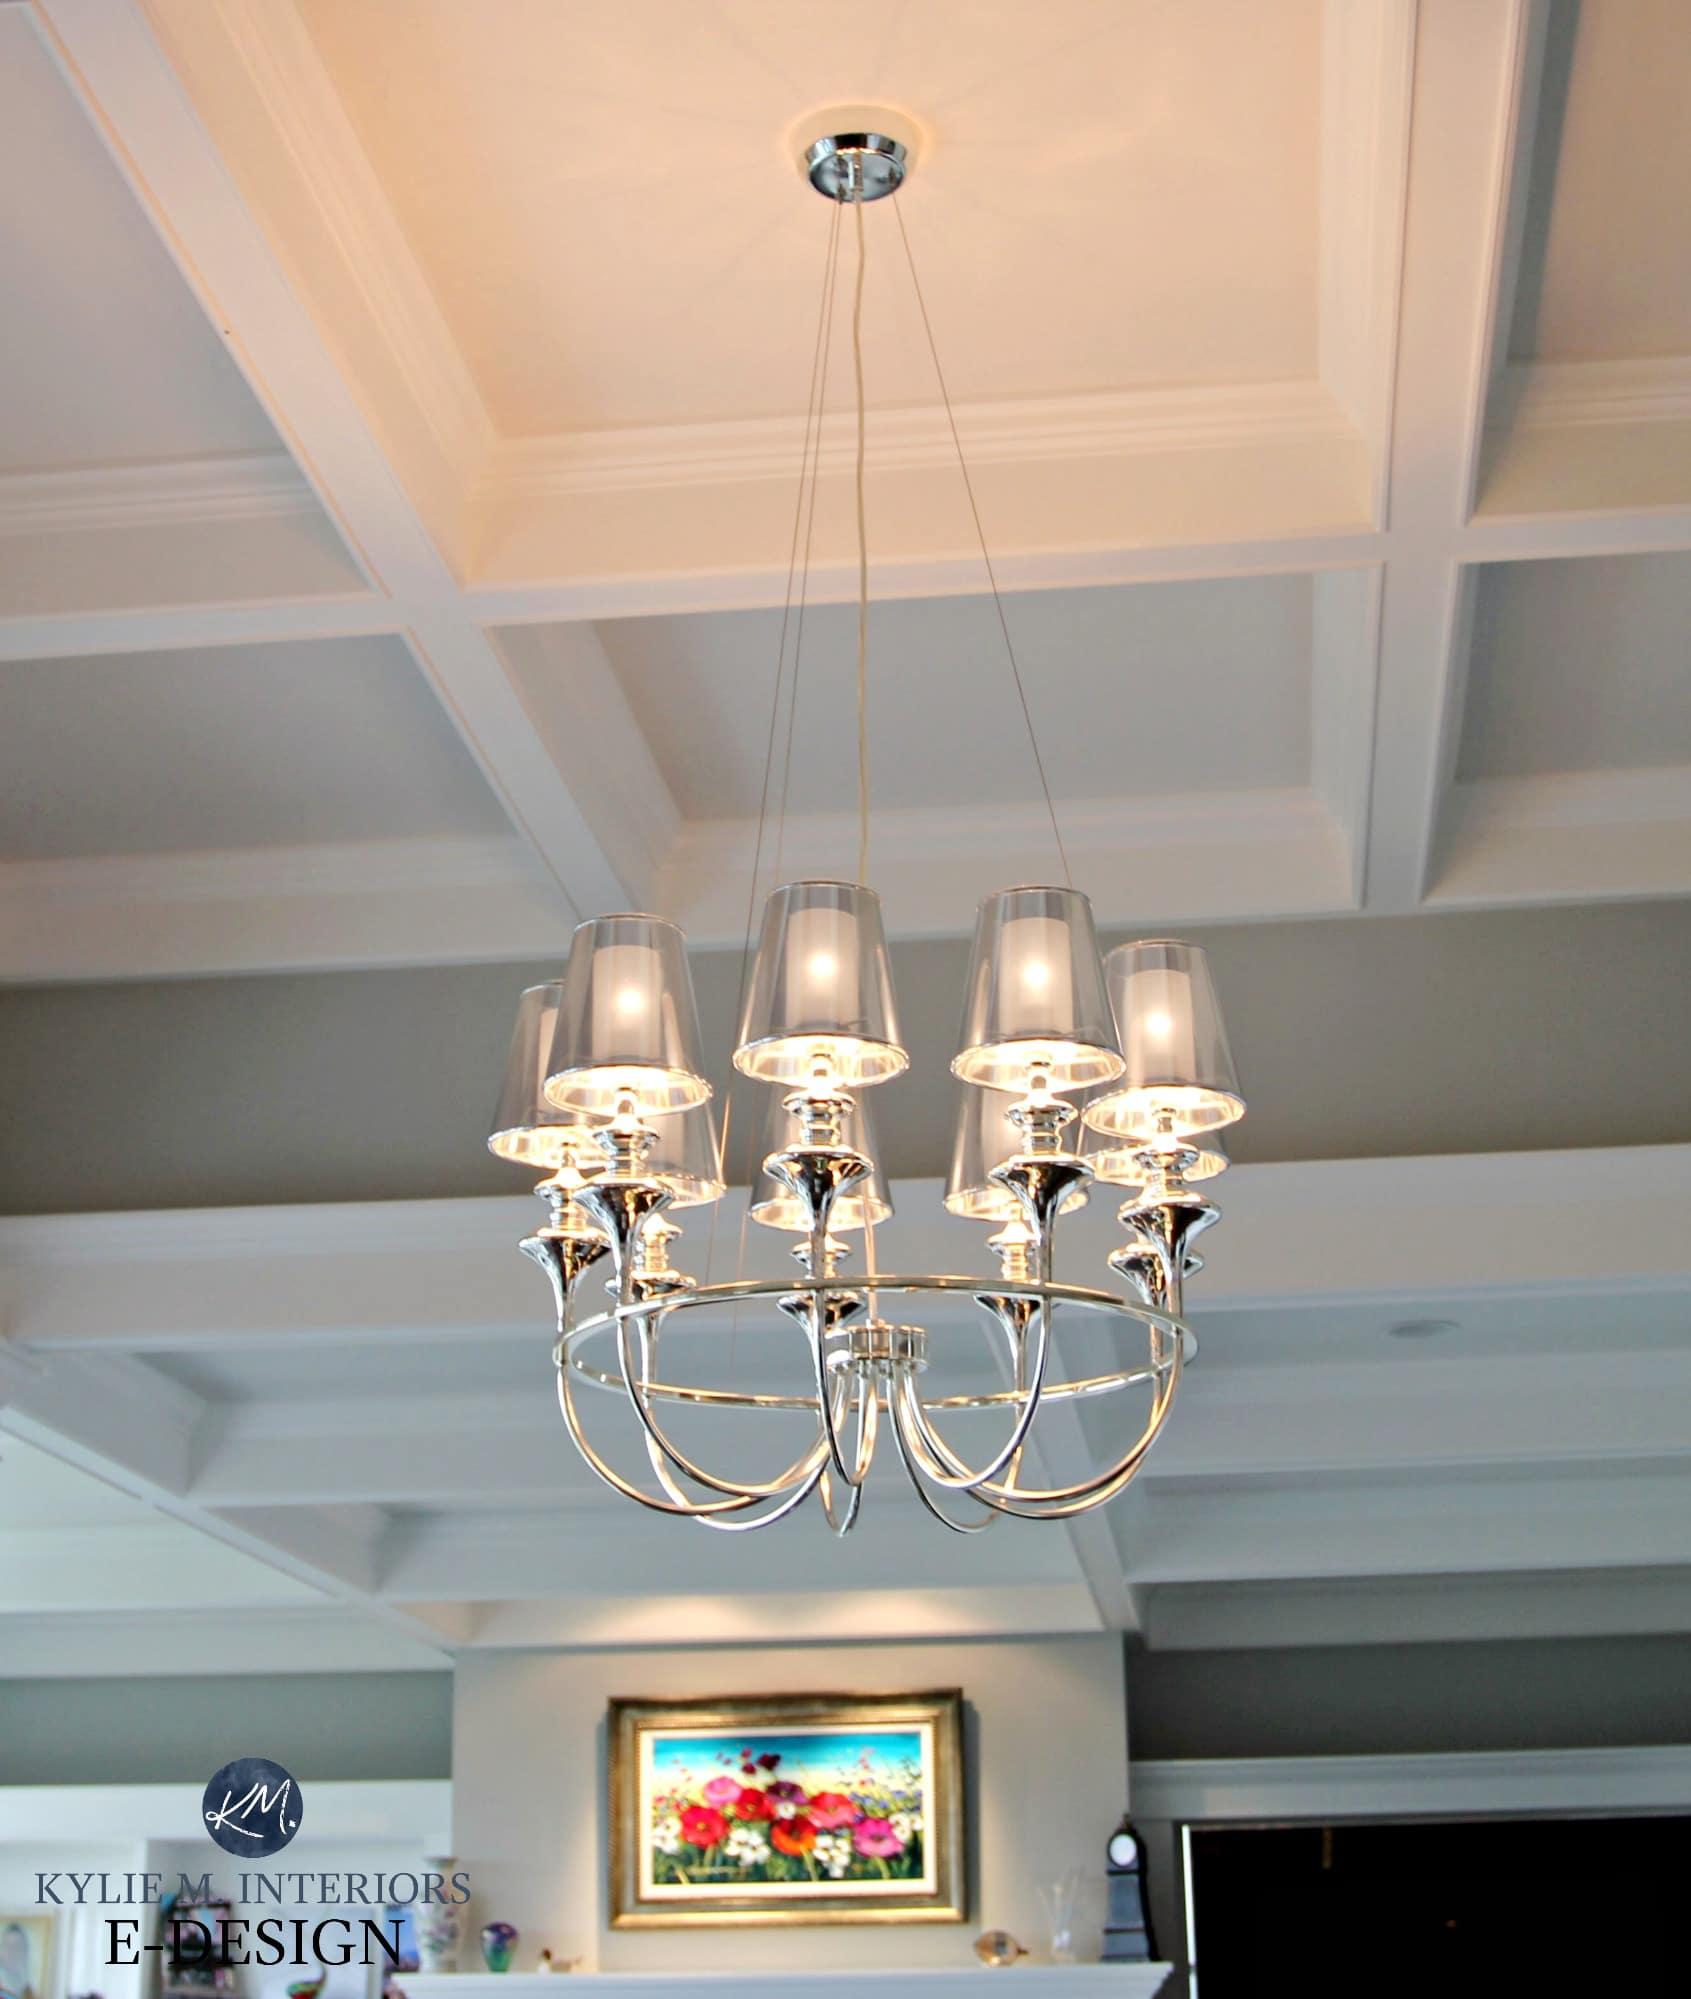 Glam chrome chandelier with coffered ceilings kylie m interior e design